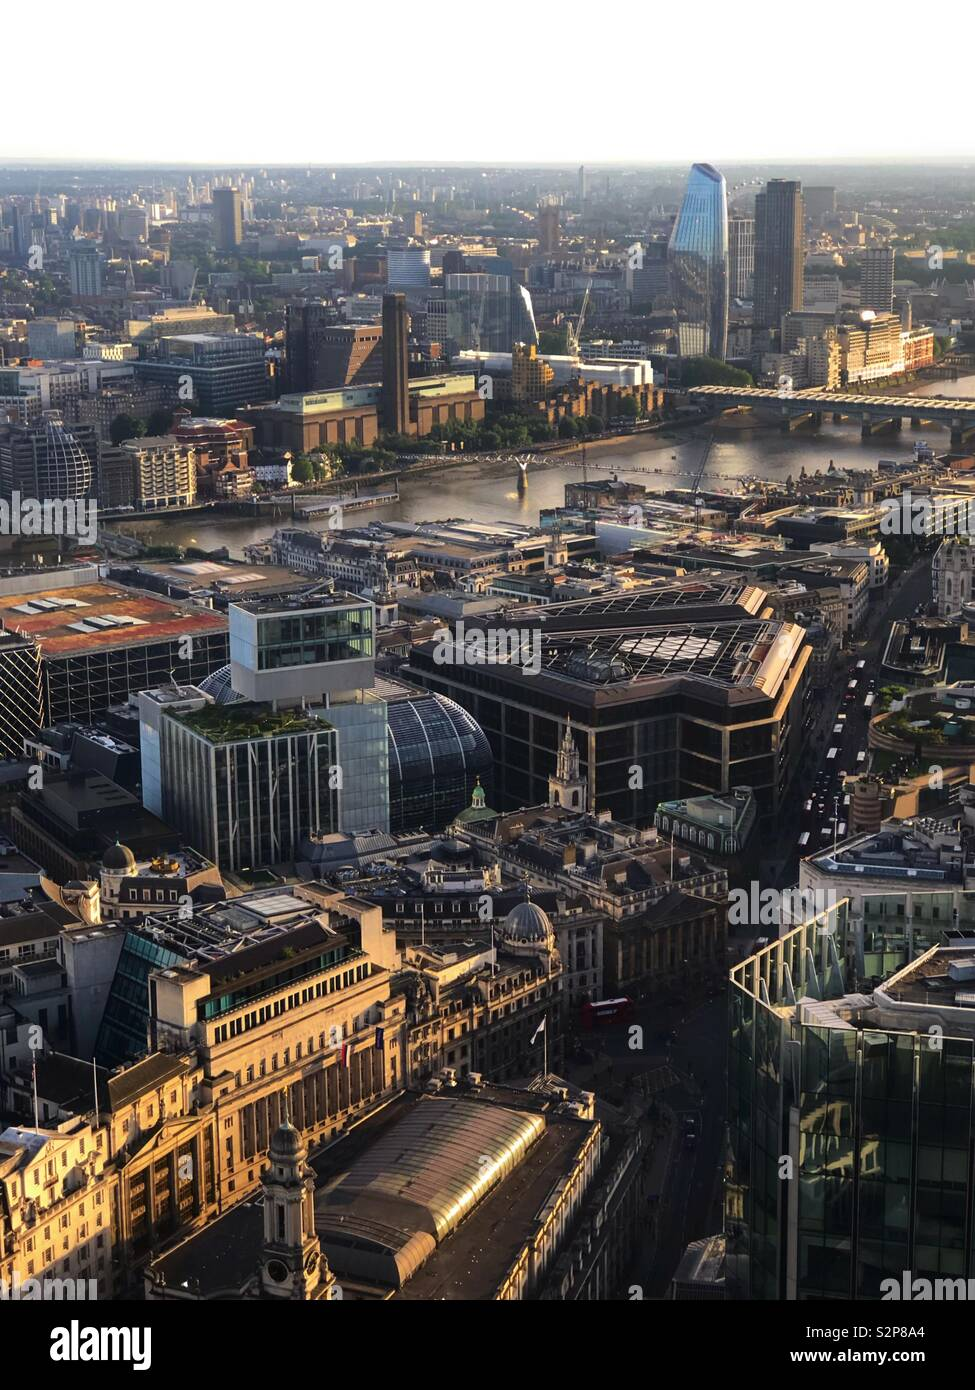 Looking down at London from a high elevation. - Stock Image